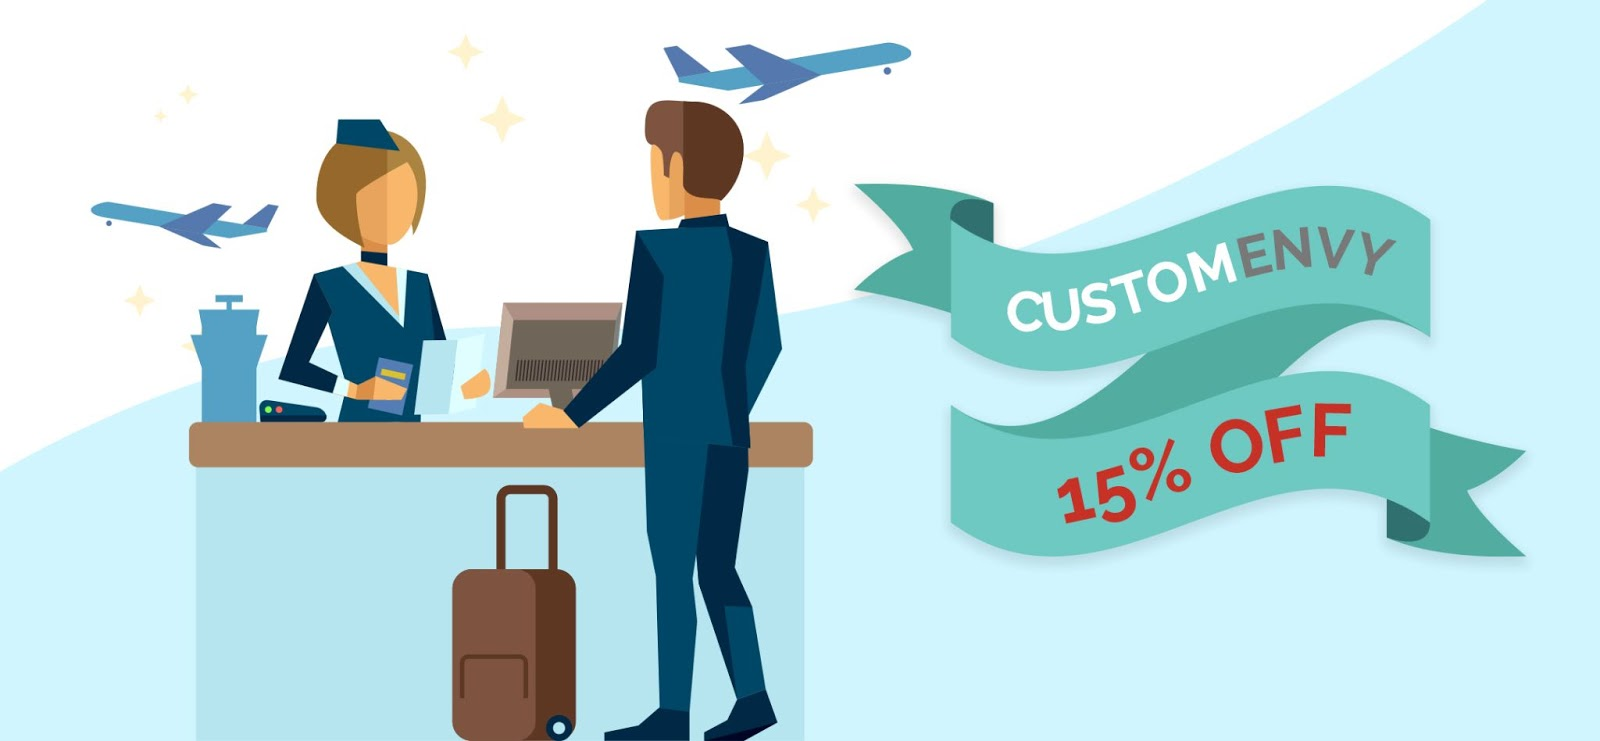 Because You Make Our Travels Safer: Travel Staff Exclusive 15% Discount